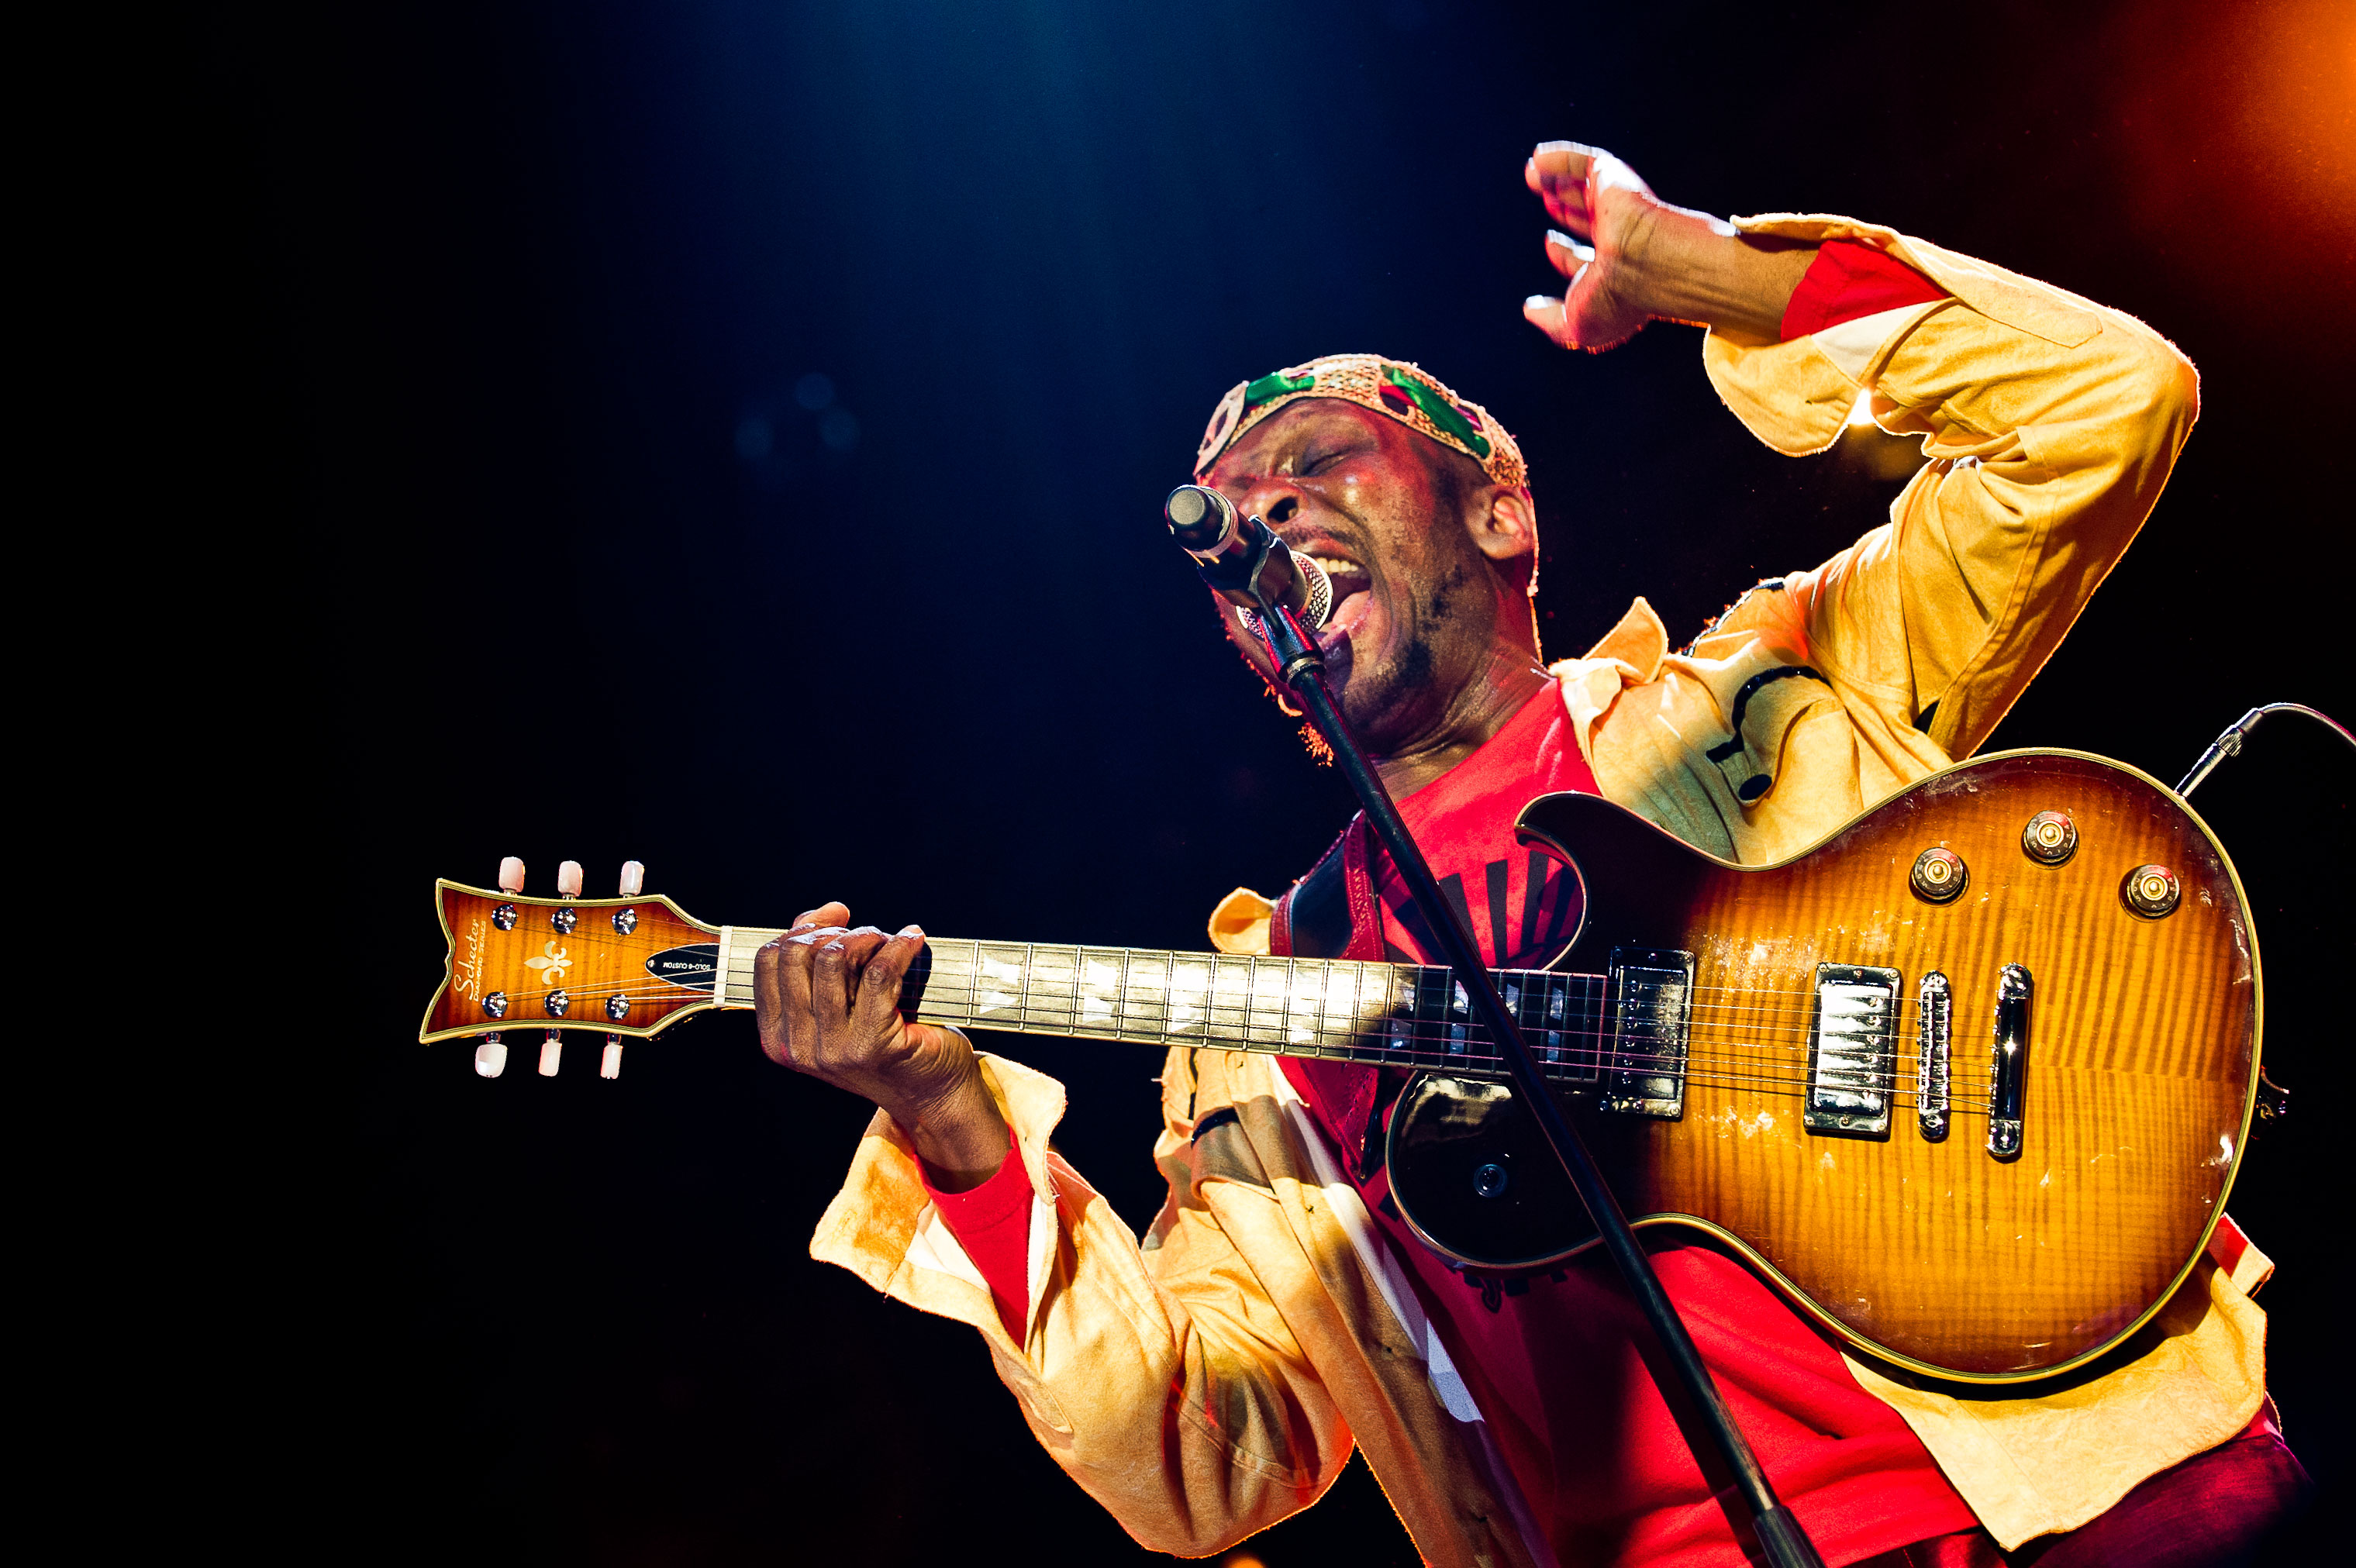 Reggae legend Jimmy Cliff will be performing at this summer's Twilight Concert Series at the Santa Monica Pier (Photo courtesy Google Images)